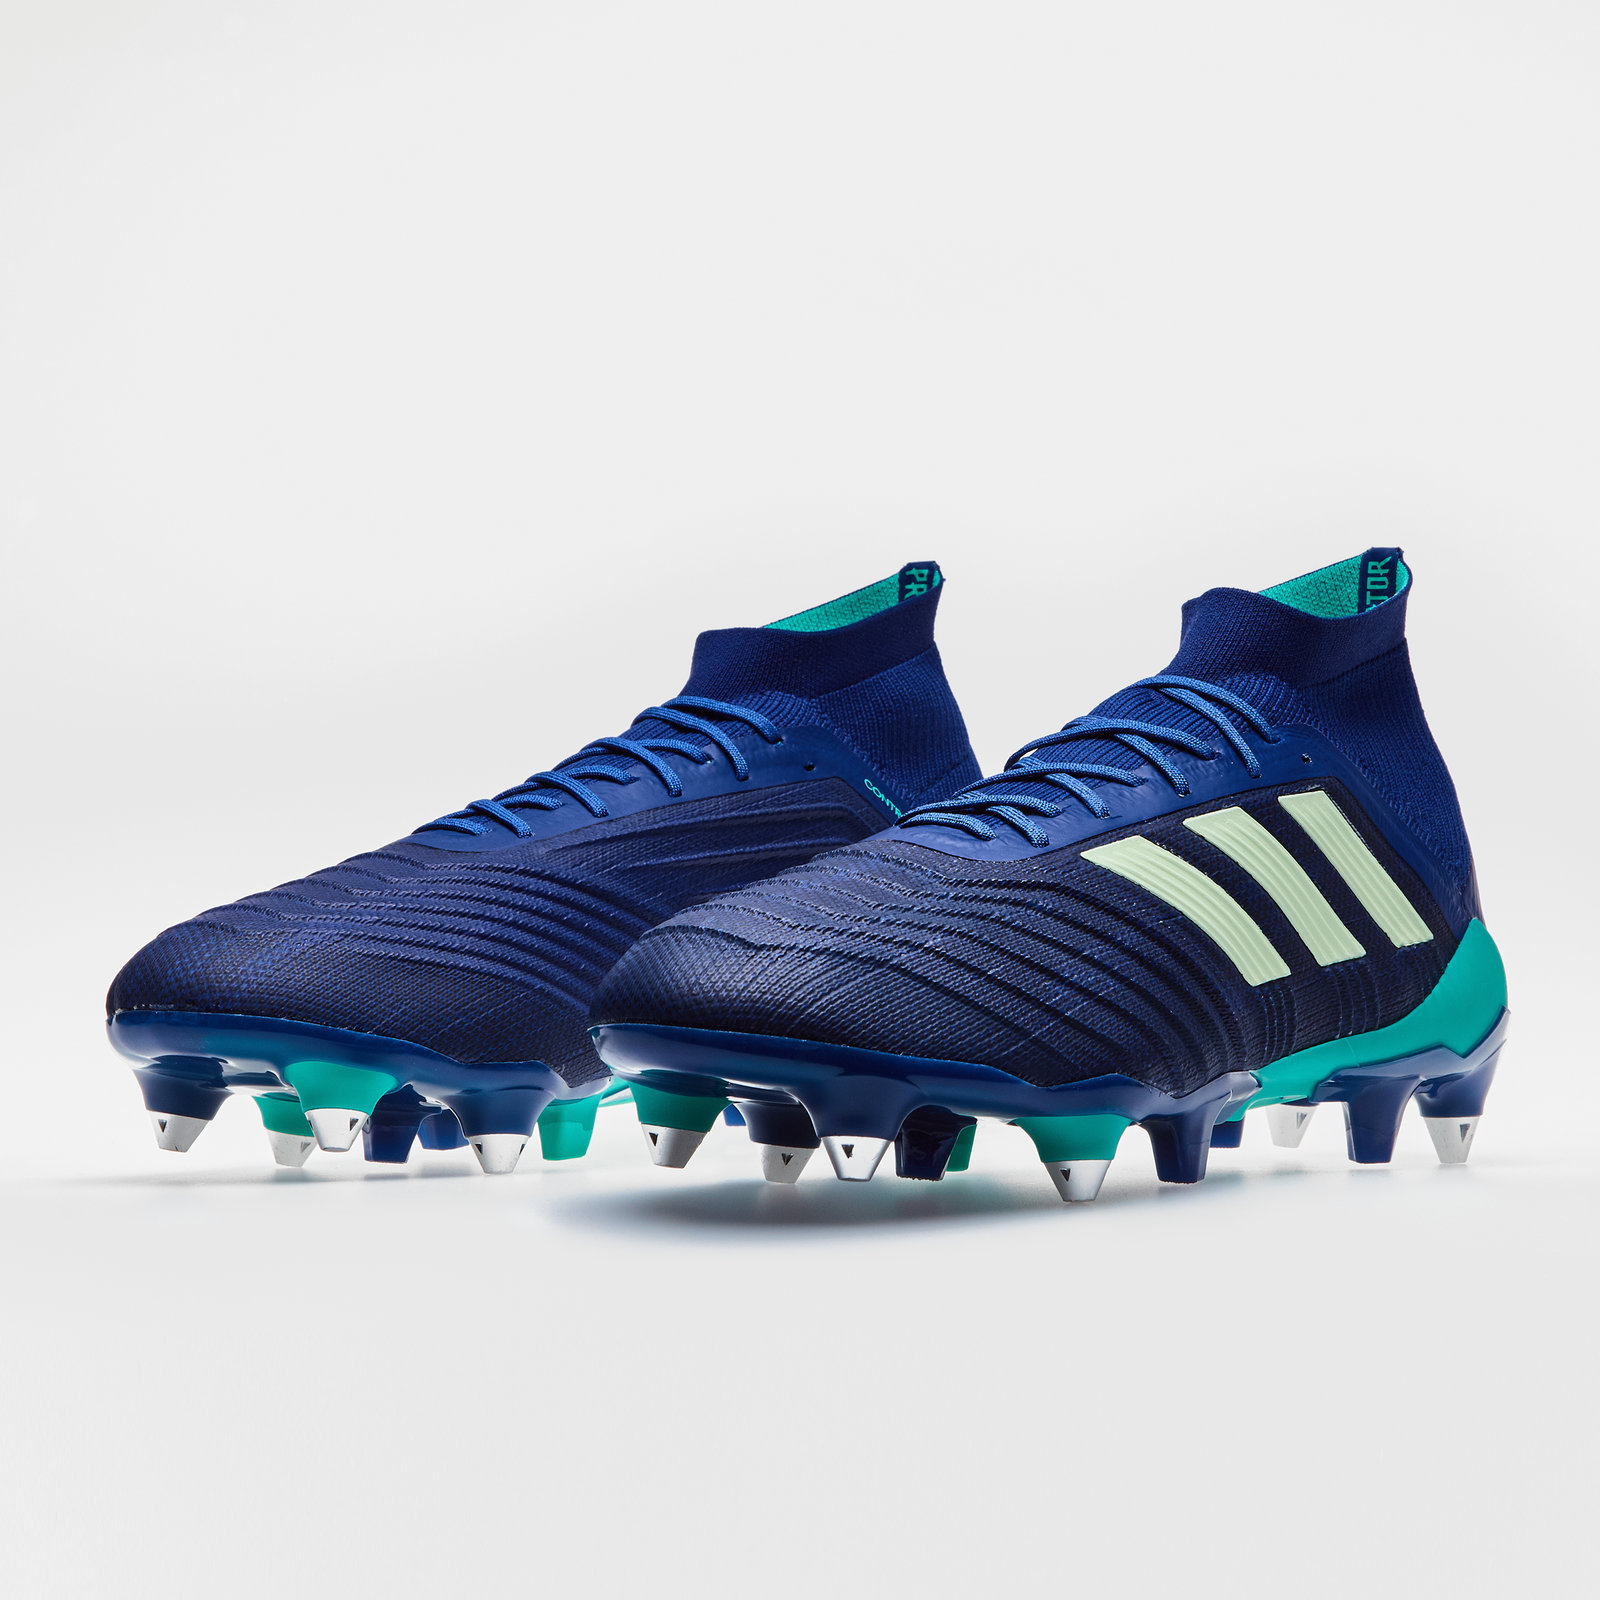 8ccd4dca2 adidas Mens Predator 18.1 Soft Ground Football Boots Studs Trainers Sports  Shoes